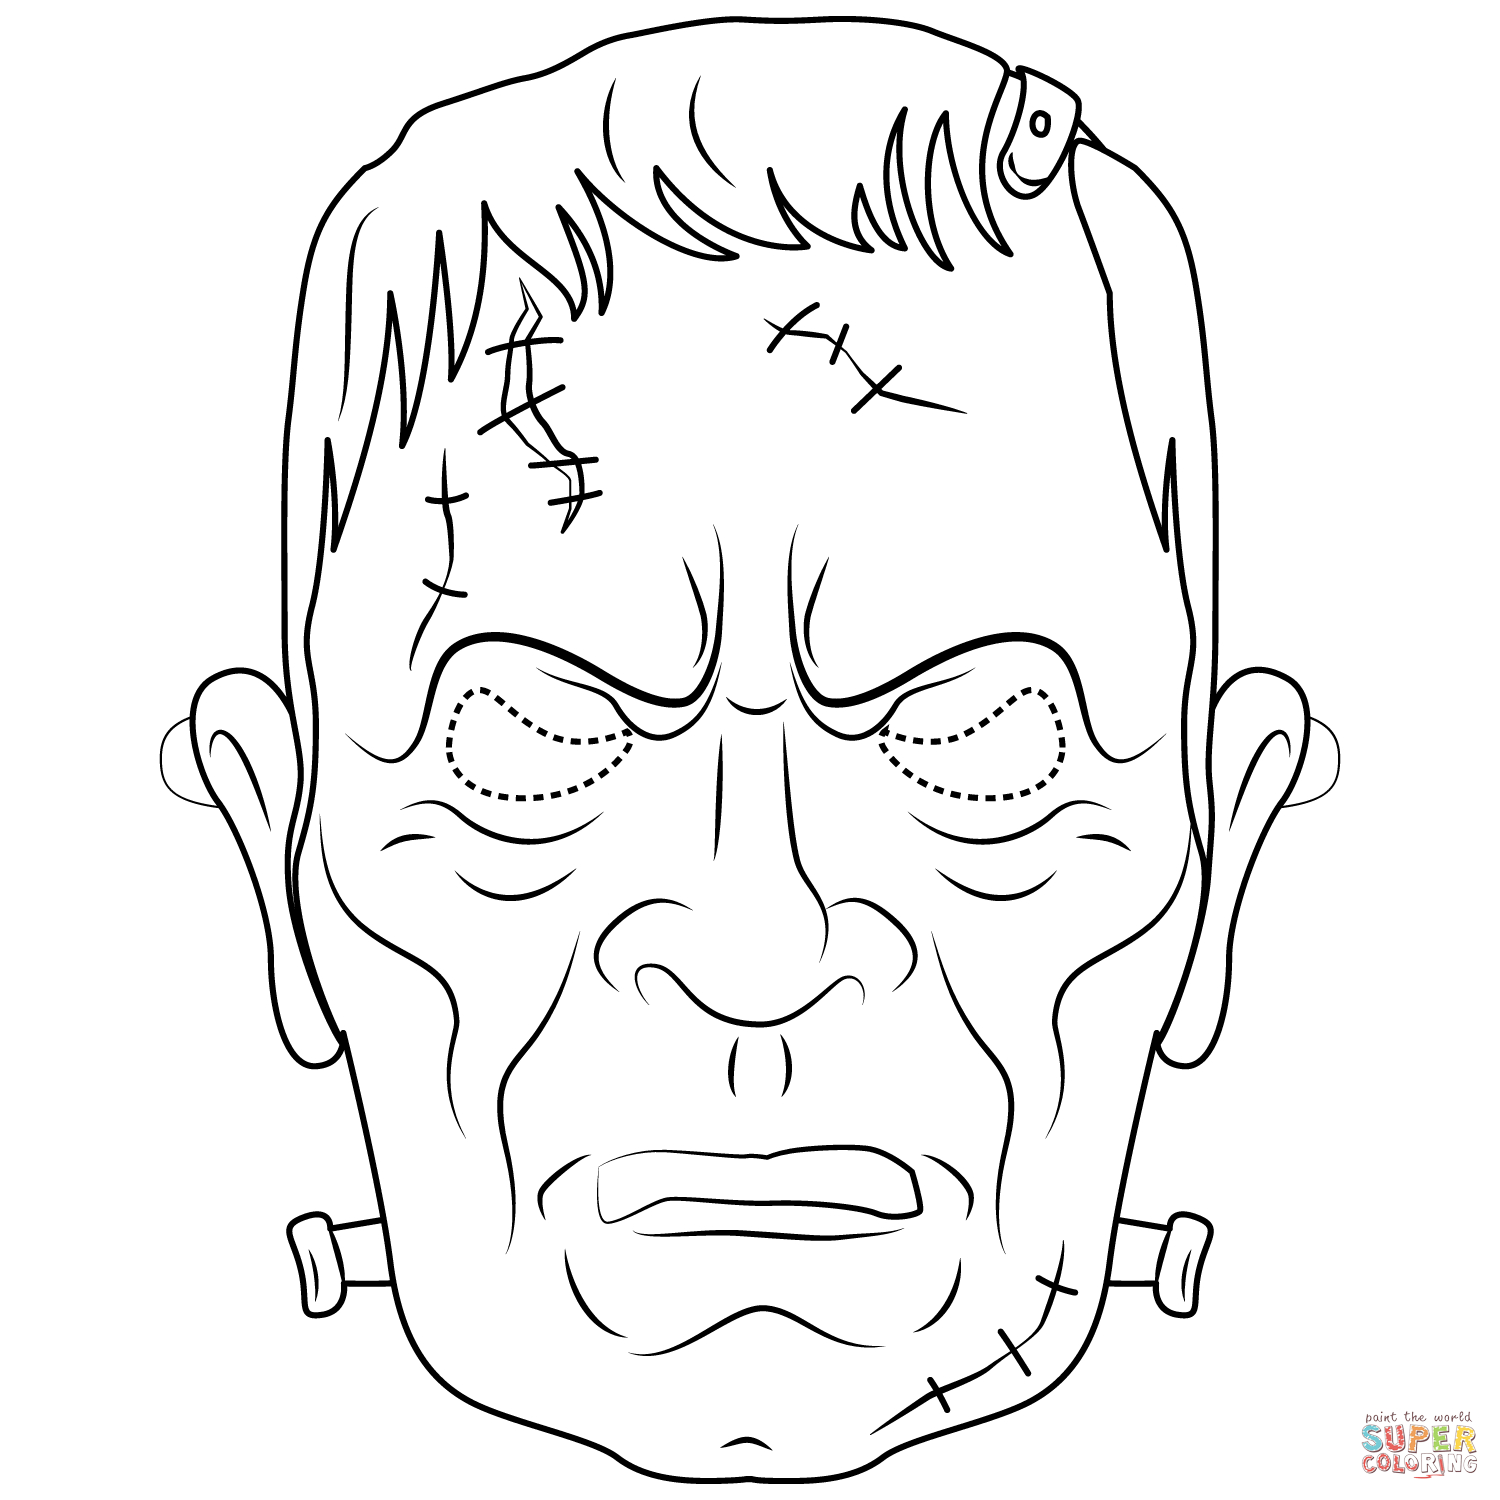 Halloween Frankenstein Coloring Pages Frankenstein Mask Coloring Page Free Printable Coloring Pages